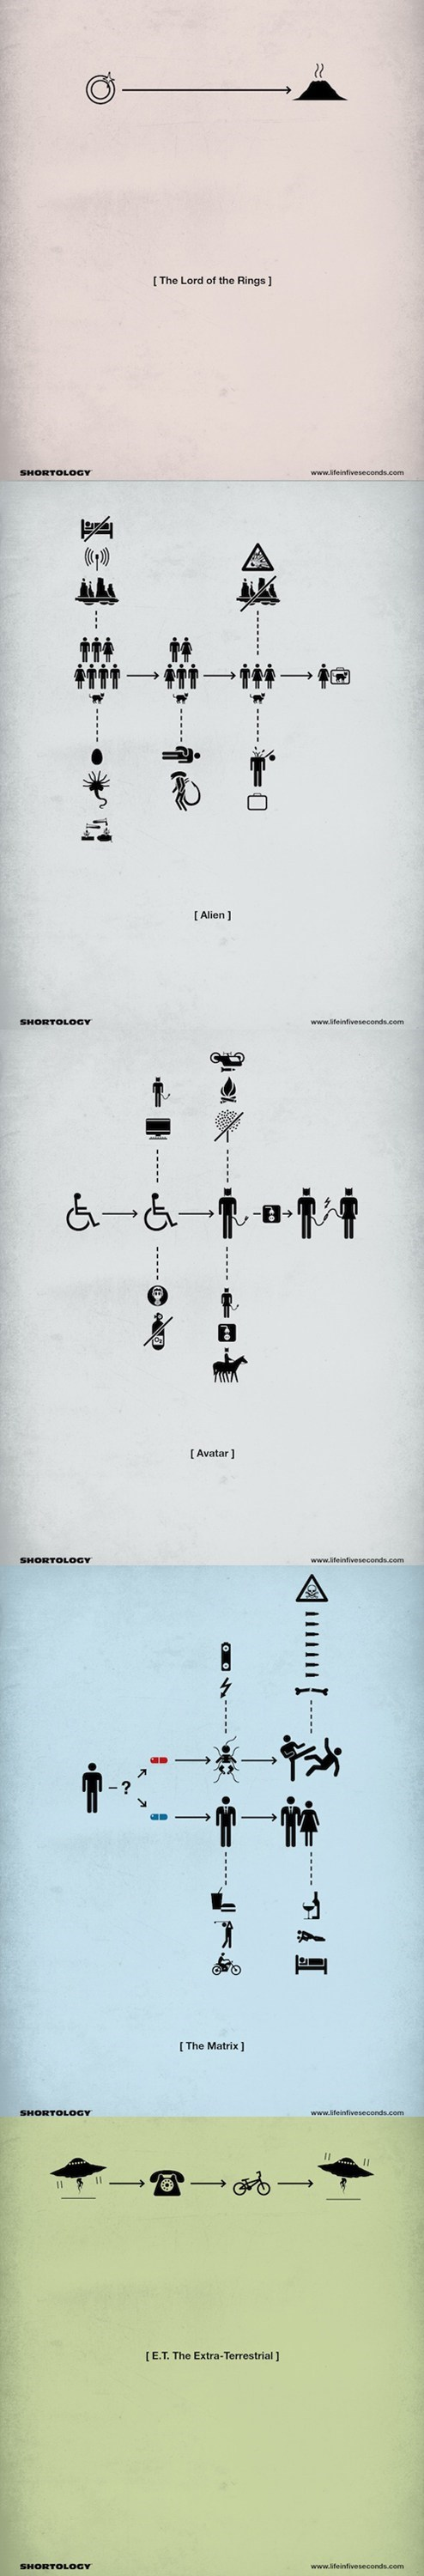 Aliens,the matrix,Lord of the Rings,pictograms,posters,alien,ring,Avatar,E-T-The-Extra-Terrestrial